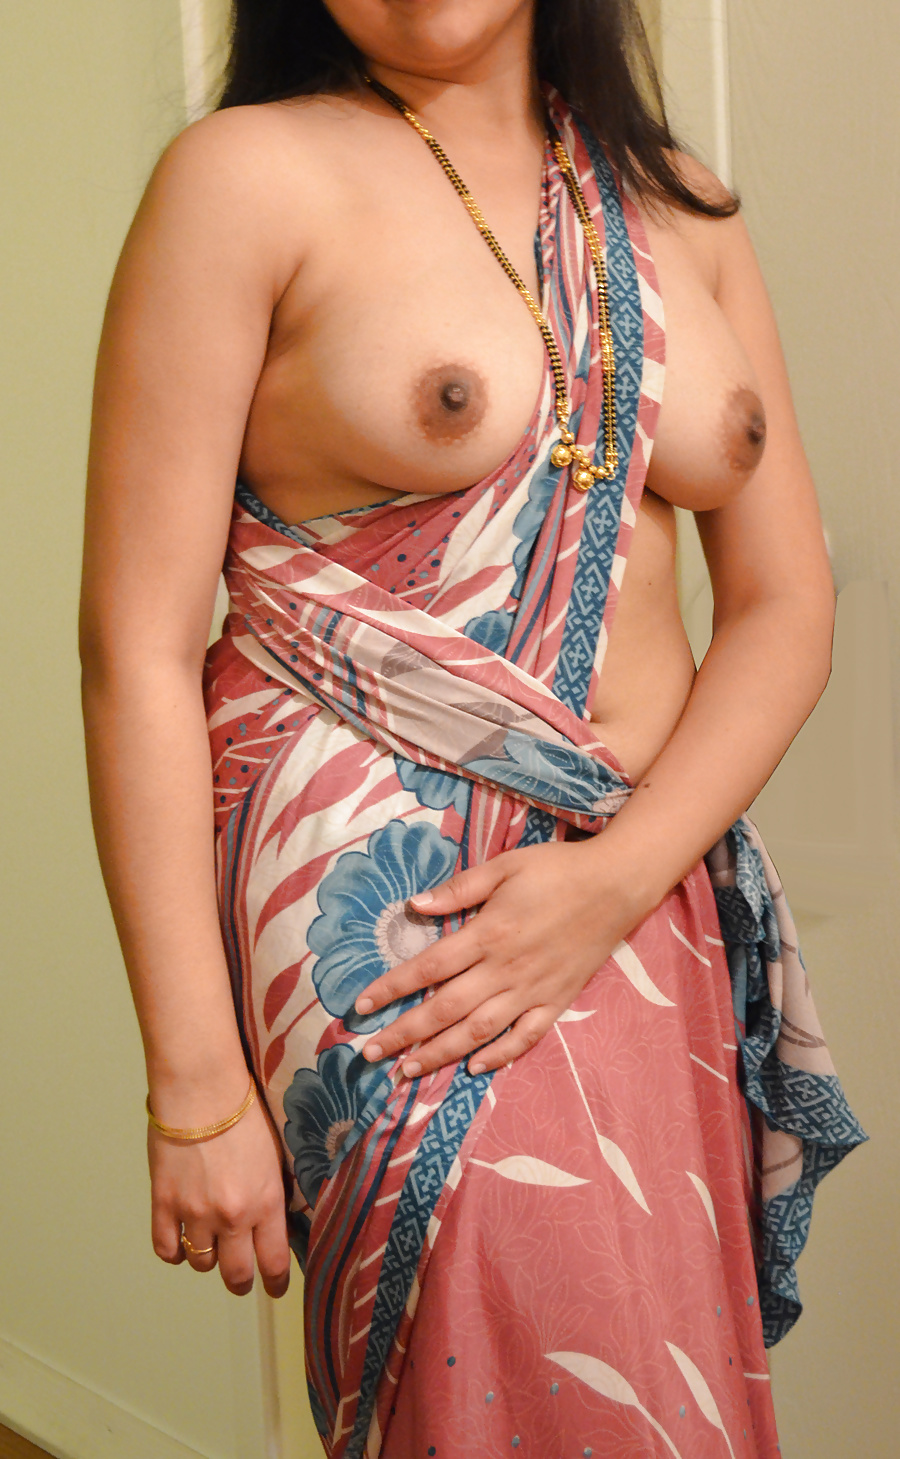 India download naked aunty picture #8